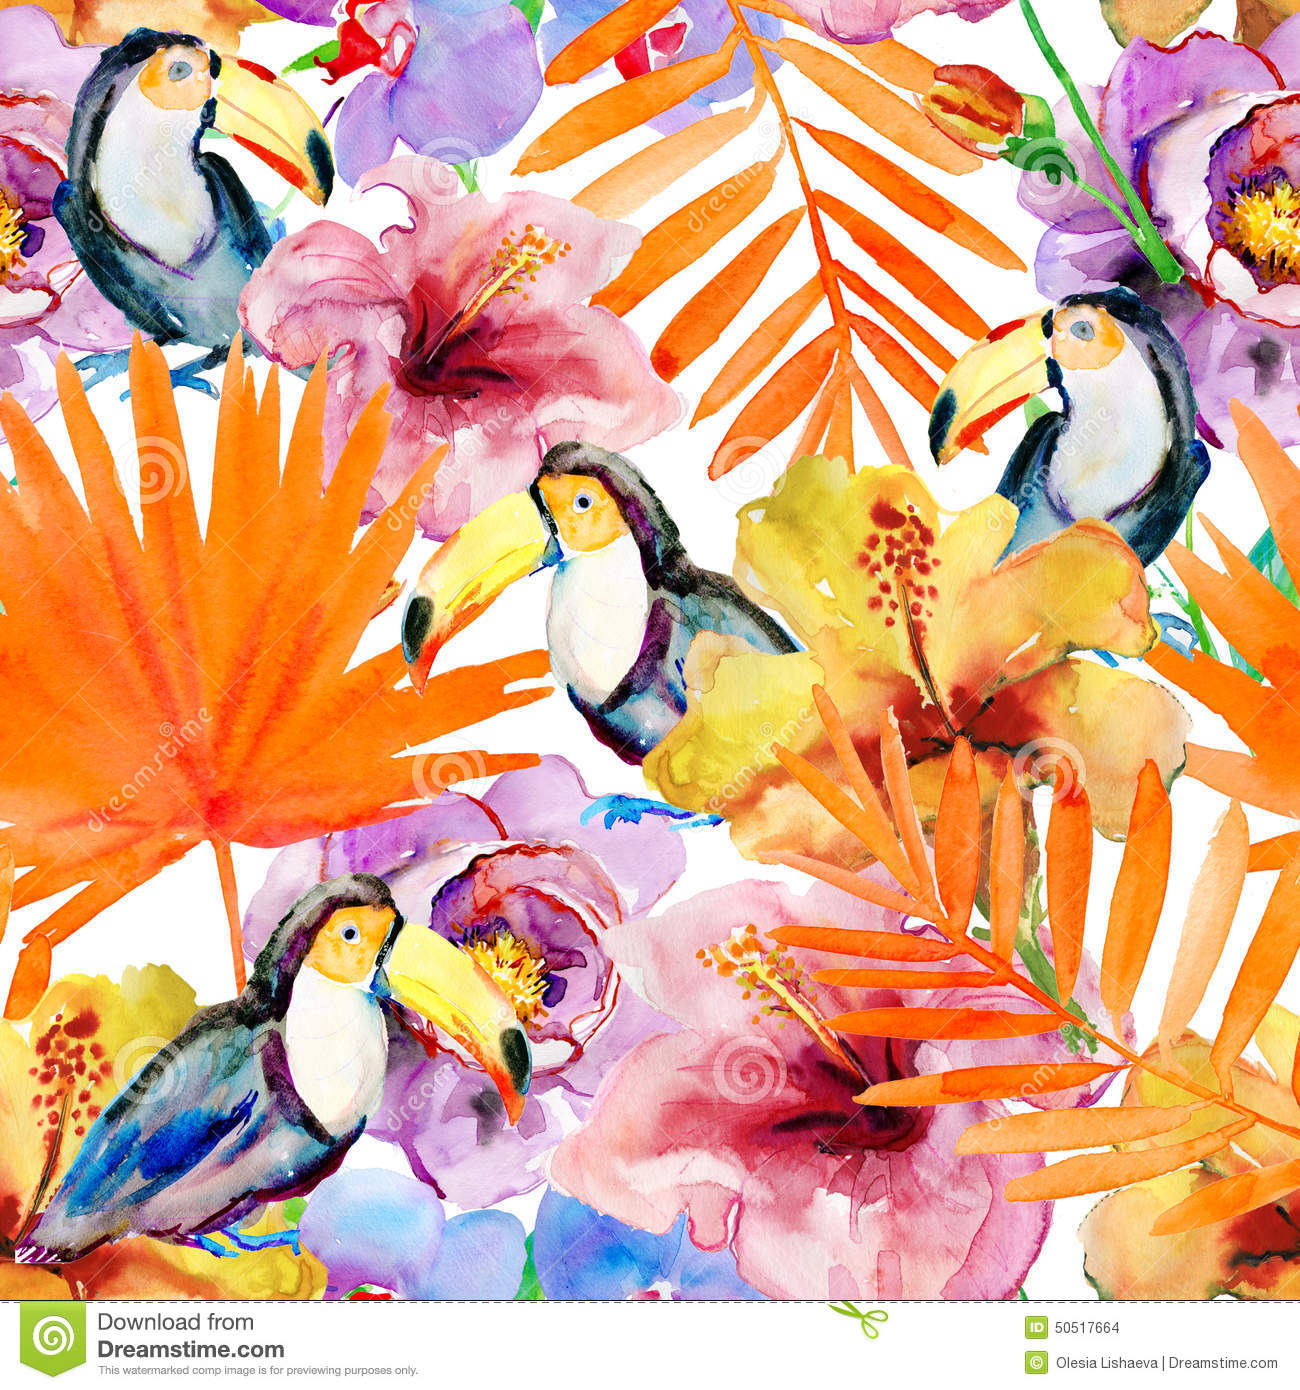 wallpaper tropical birds and foliage - photo #25